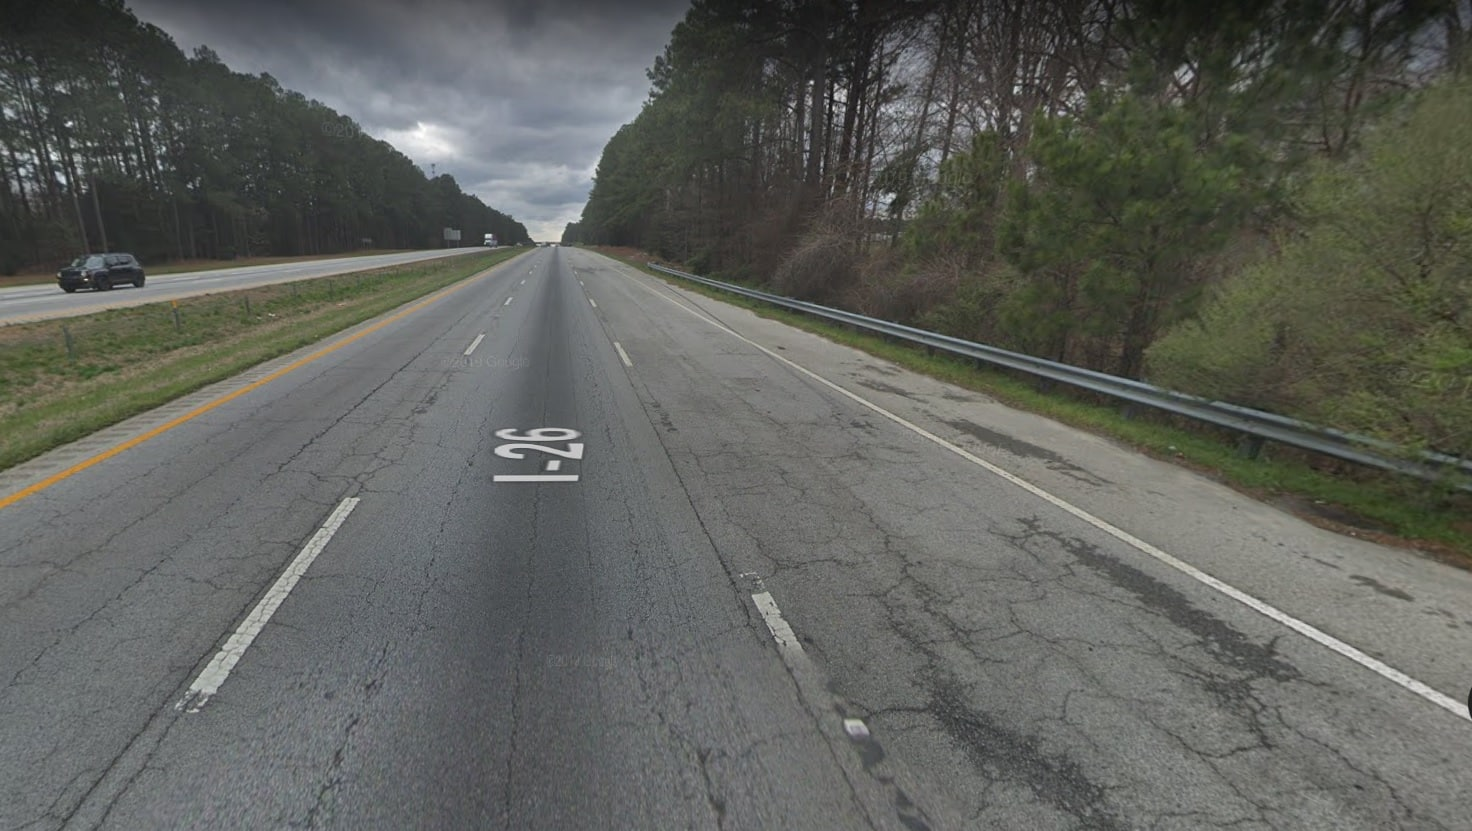 I-26 in South Carolina